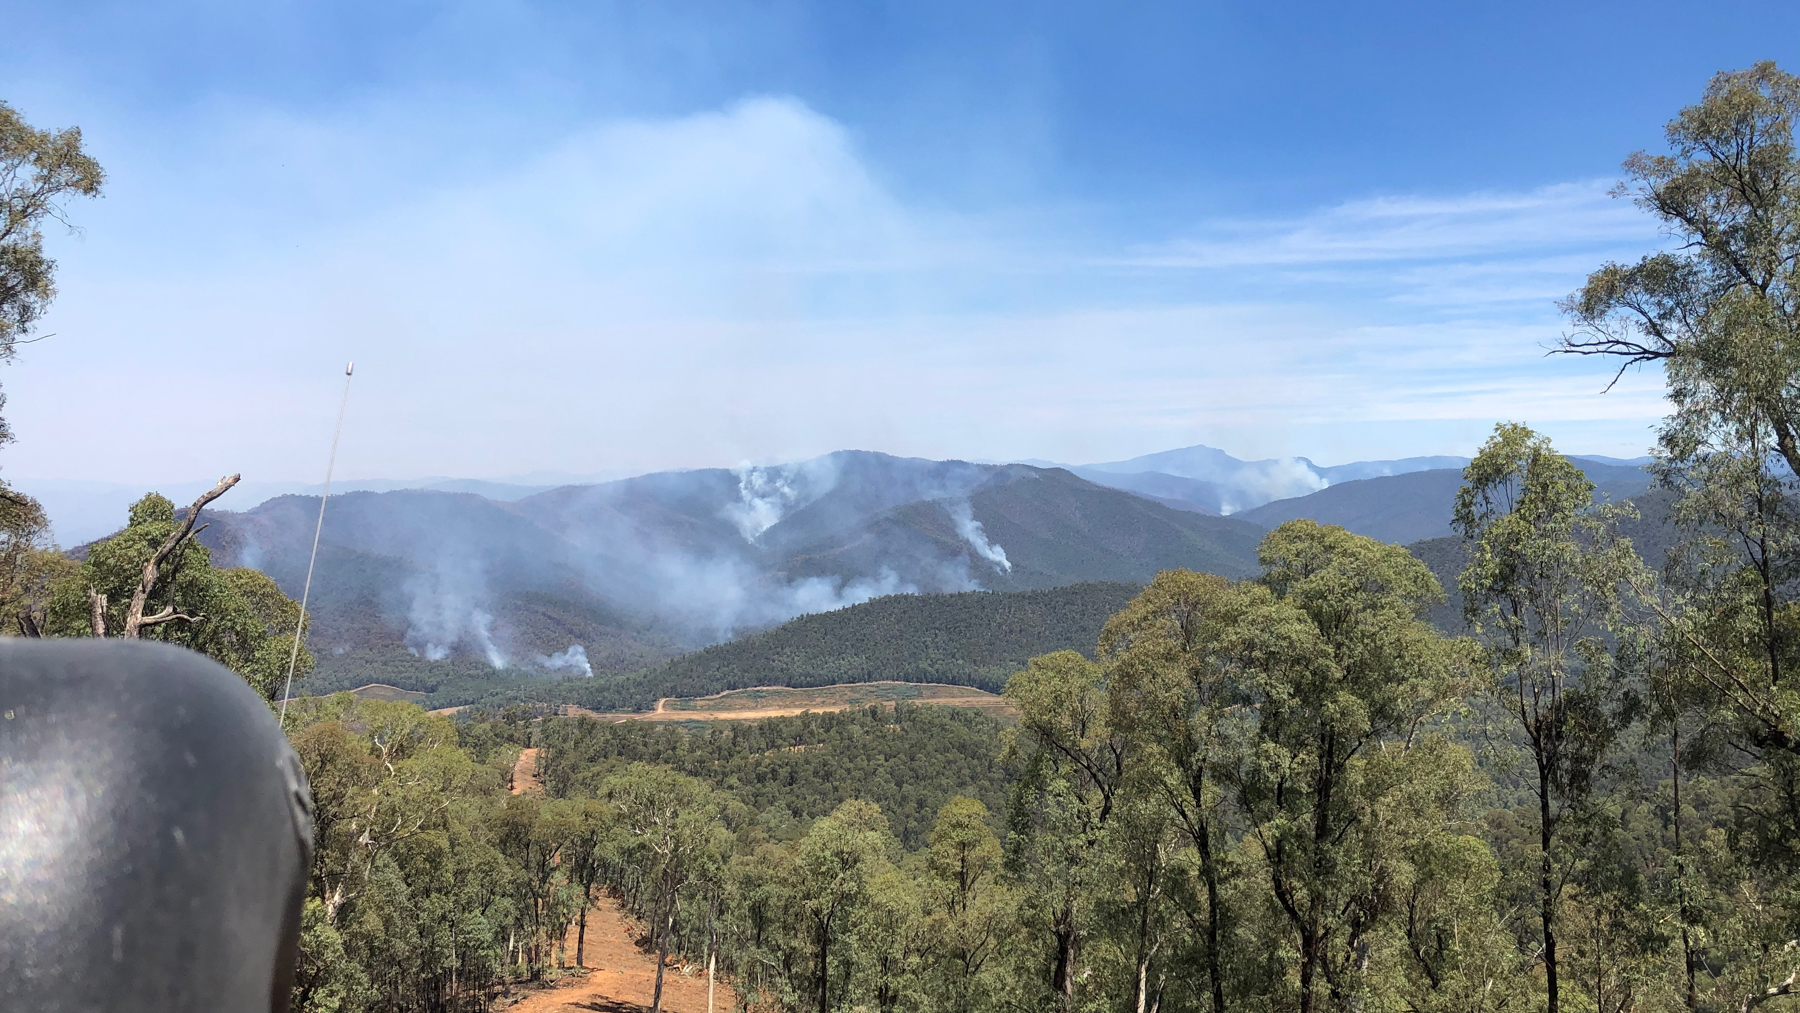 Bushfire near Moyhu that Sampson's brigade fought on January 11 (Photo Courtesy of Moyhu Fire Brigade)